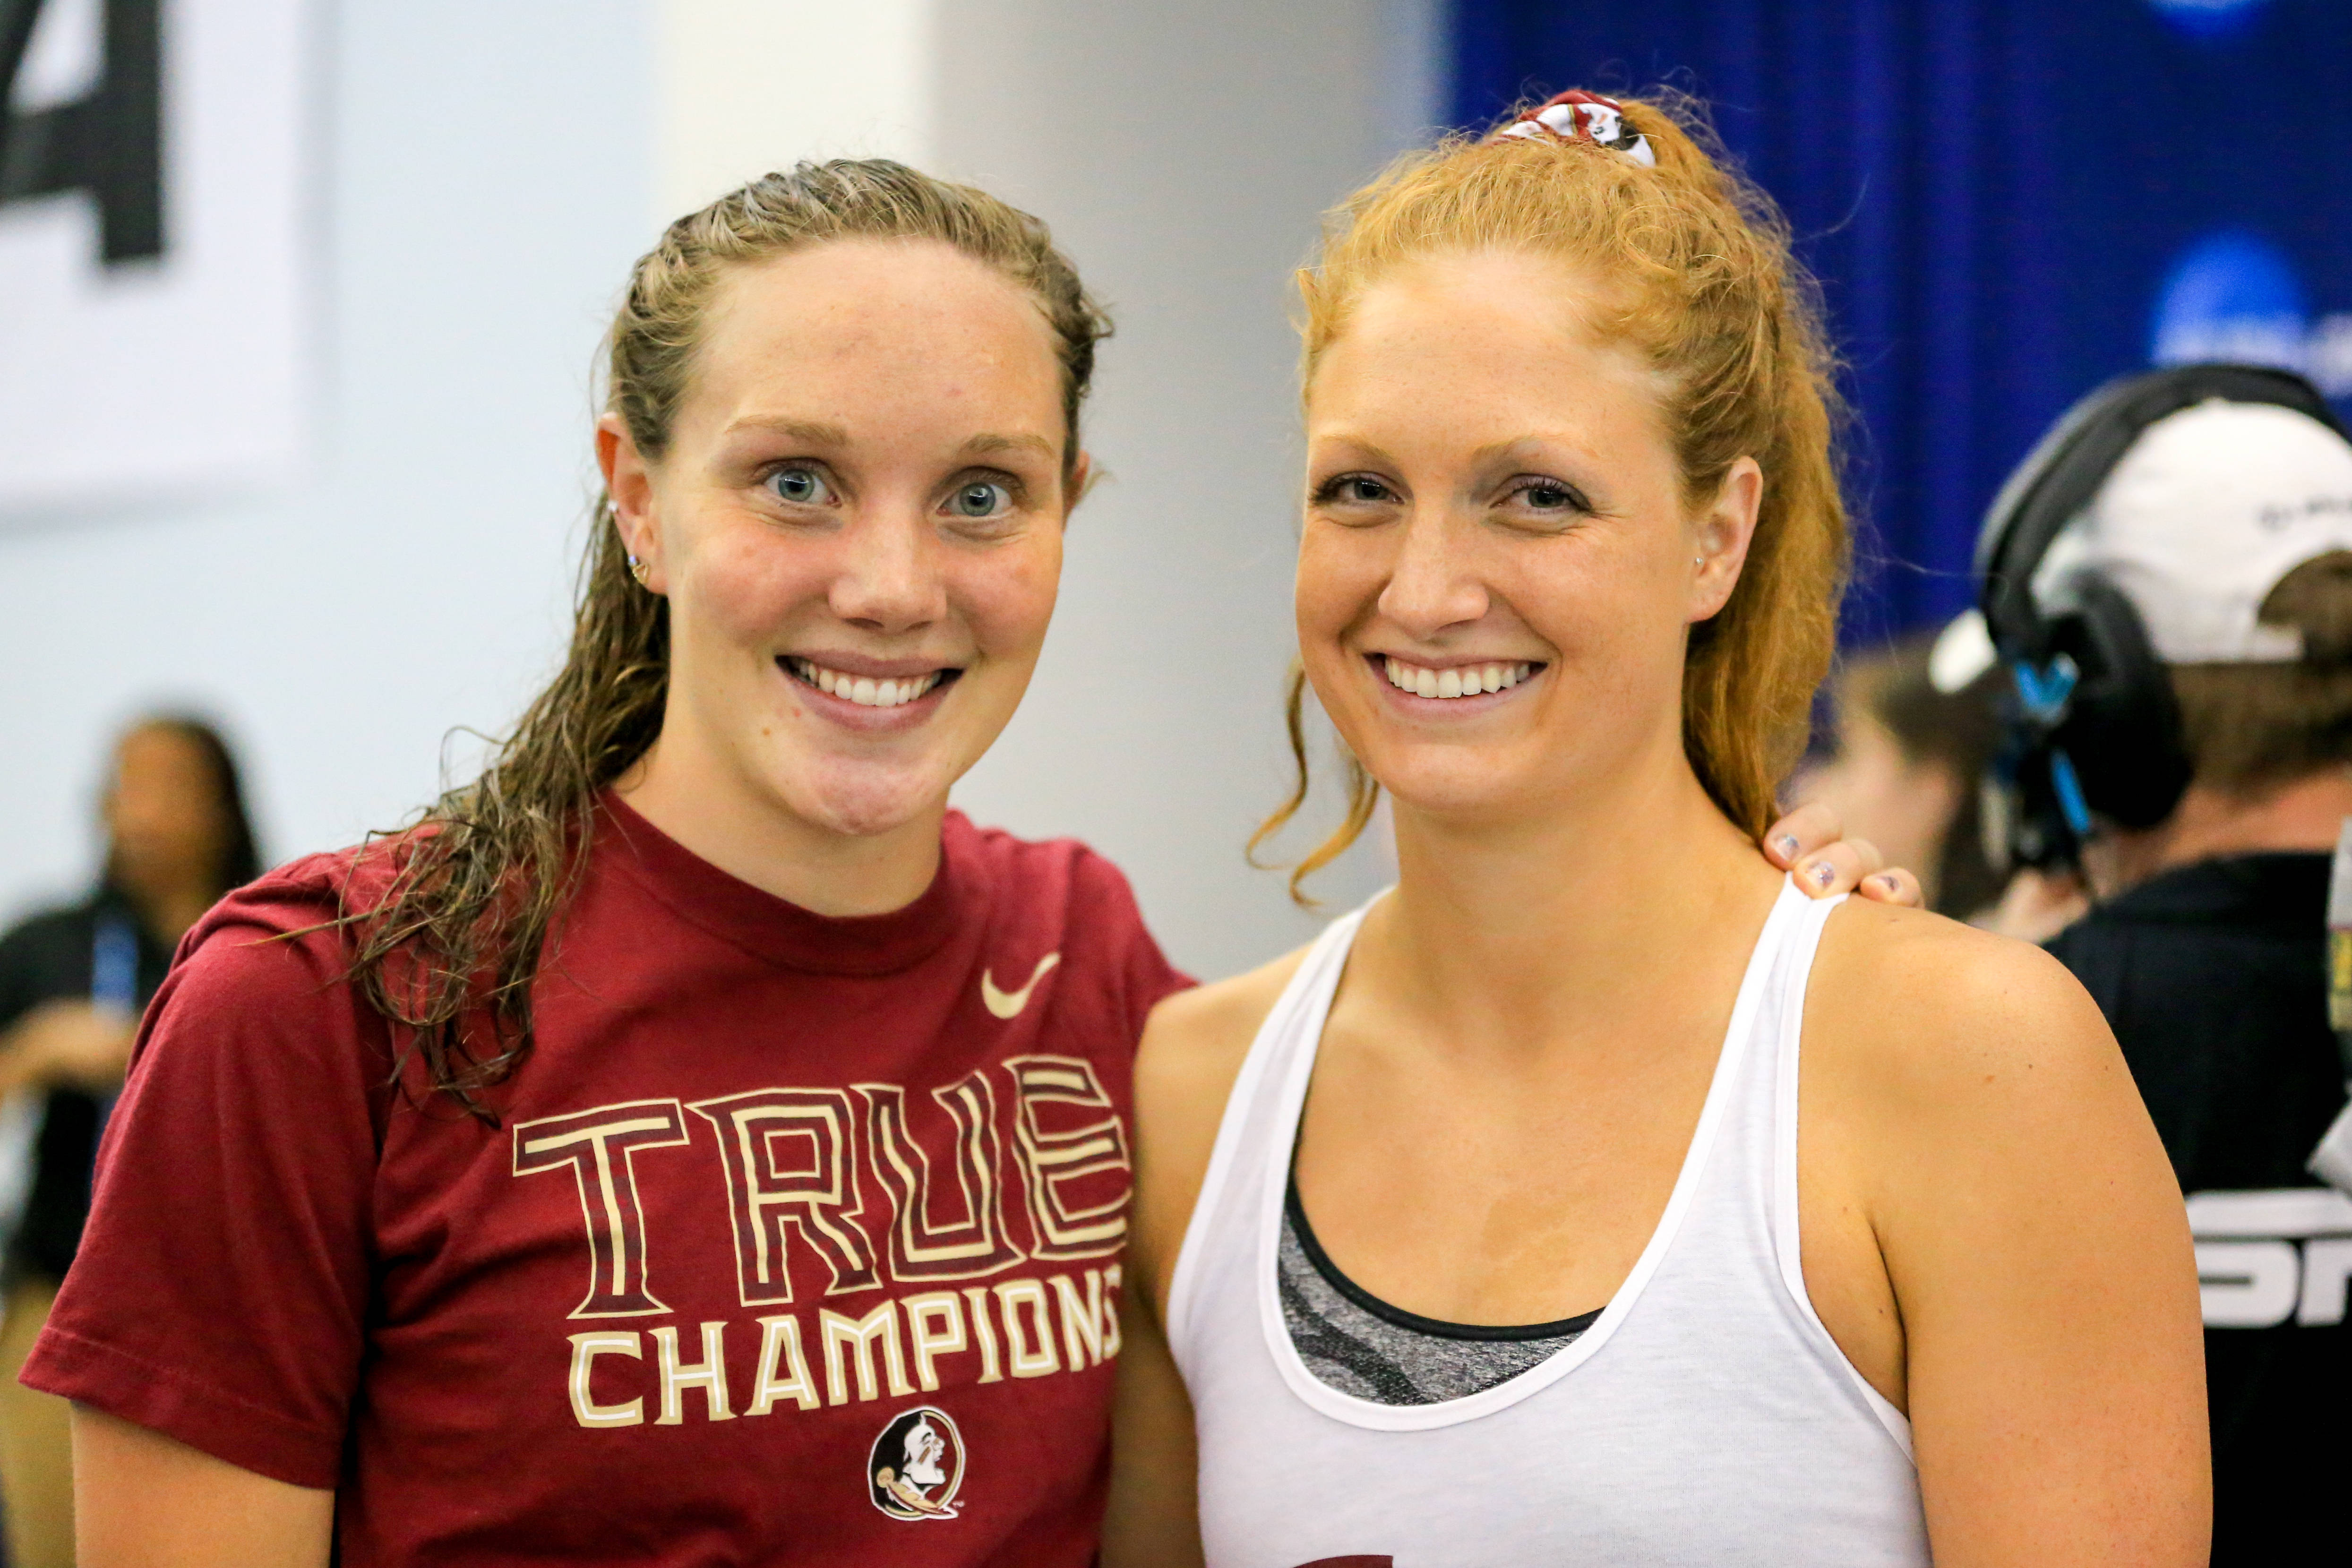 Kaitlyn Dressel and Haley Powell smile after the meet